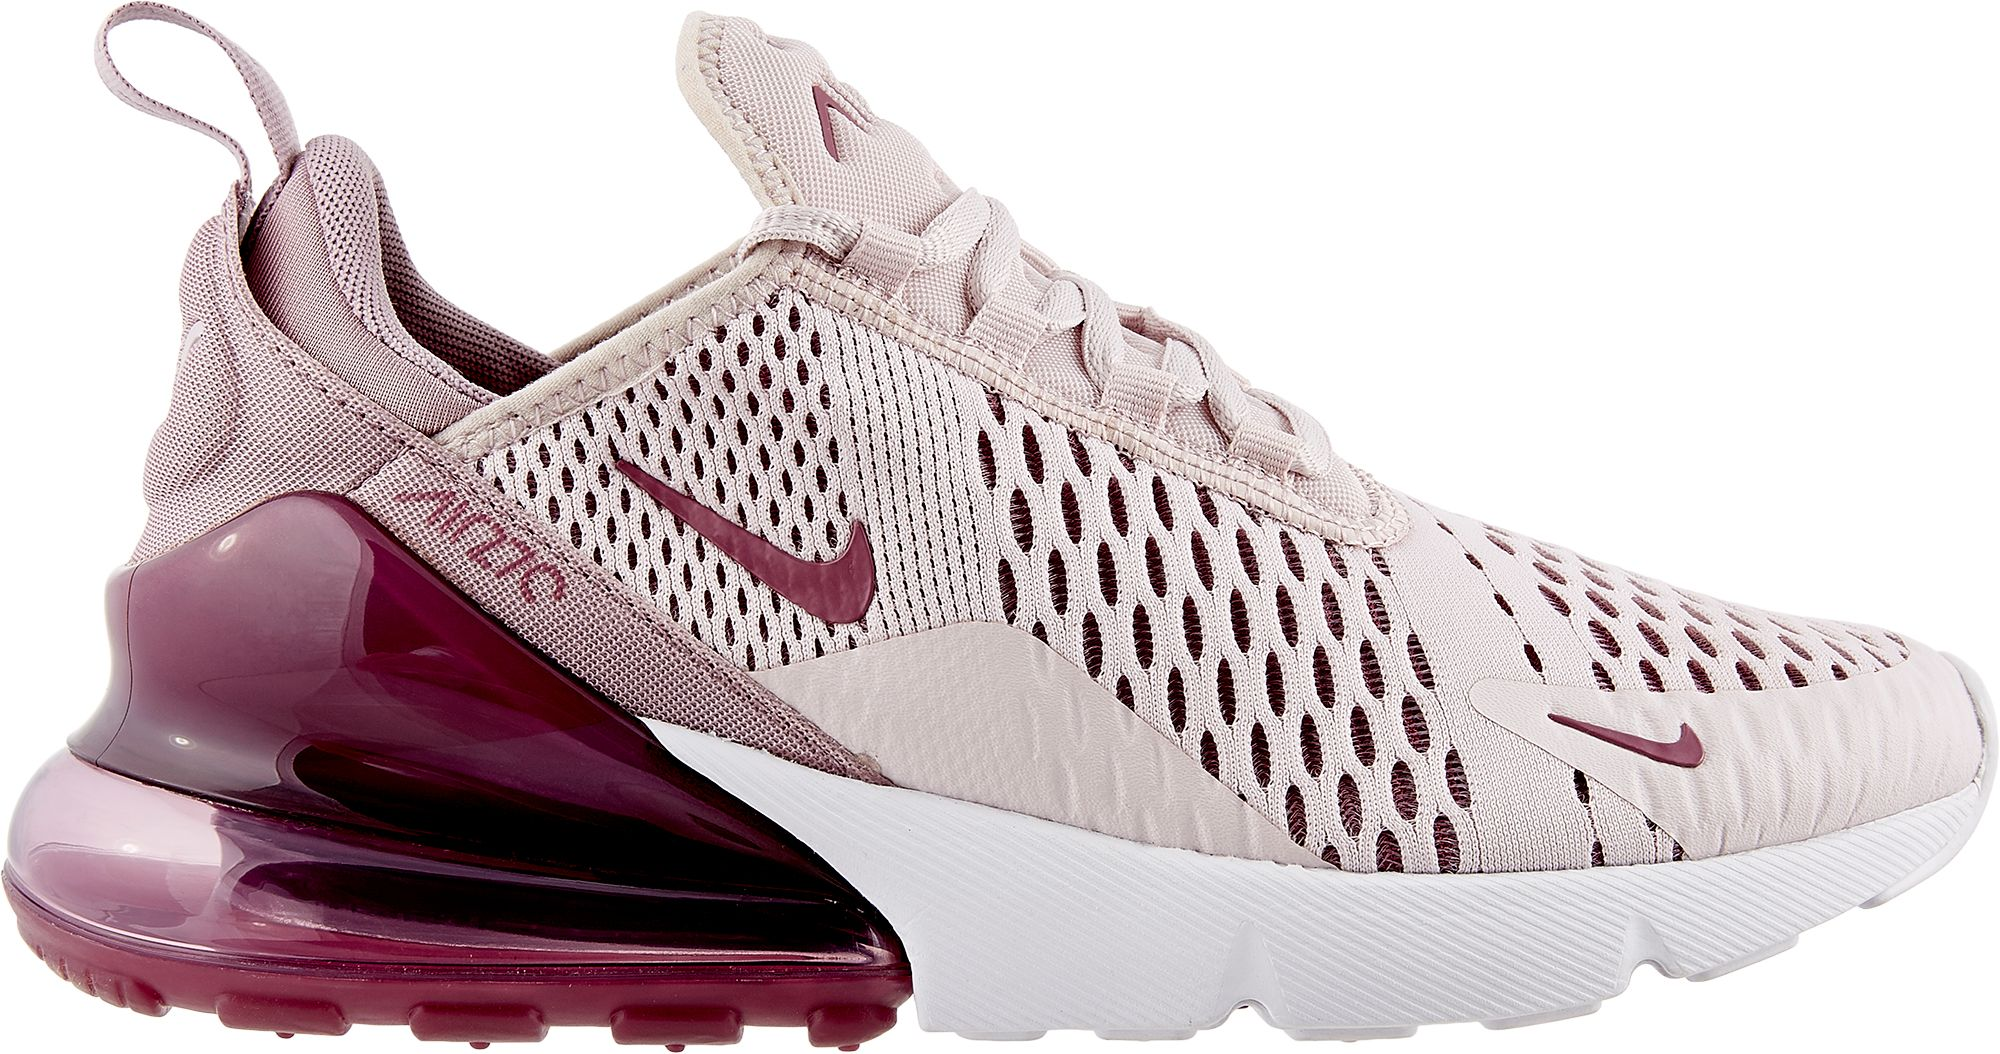 check out 0ed7c 2283a NIKE. NIKE WOMEN S AIR MAX 270 SHOES